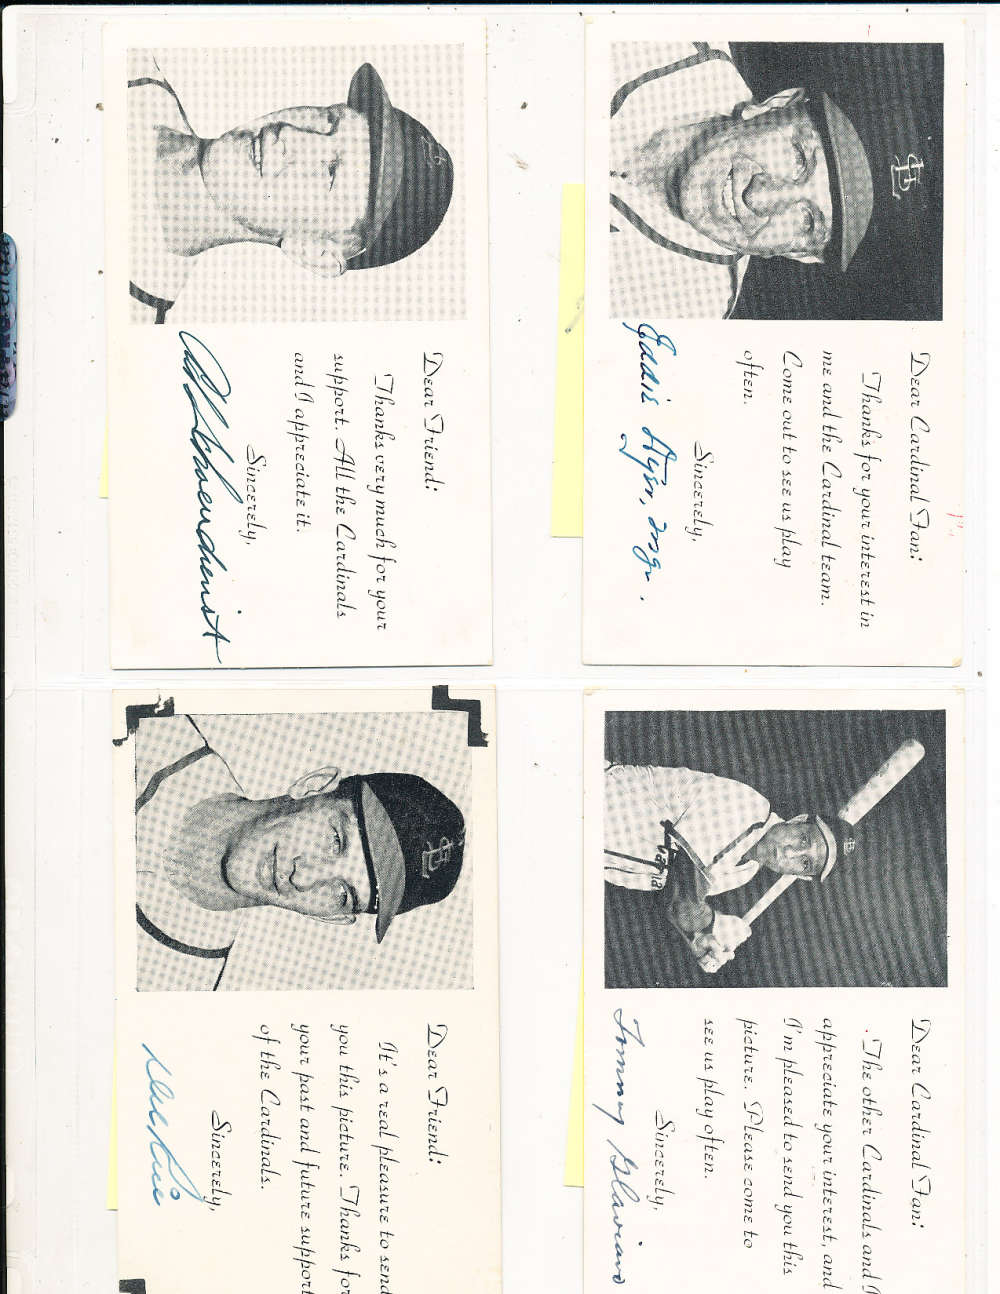 Del Rice (d83) St. Louis Cardinals Signed 1951 Team issue Post Card